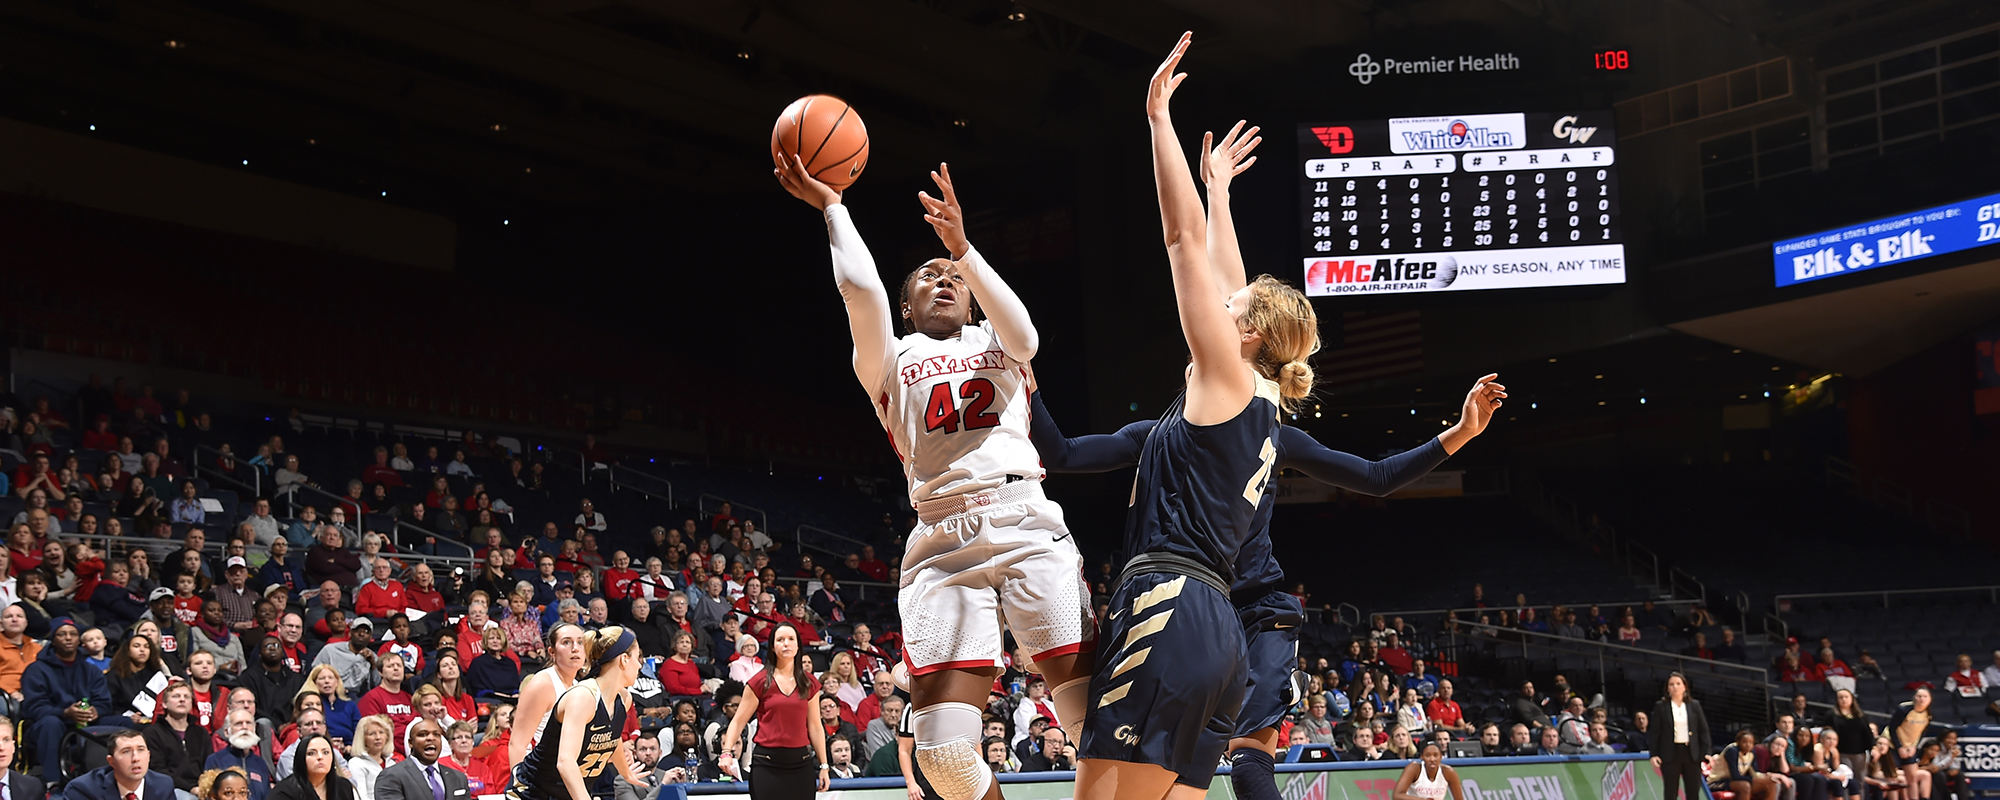 udwbb stays unbeaten in a-10 with win over gw - university of dayton